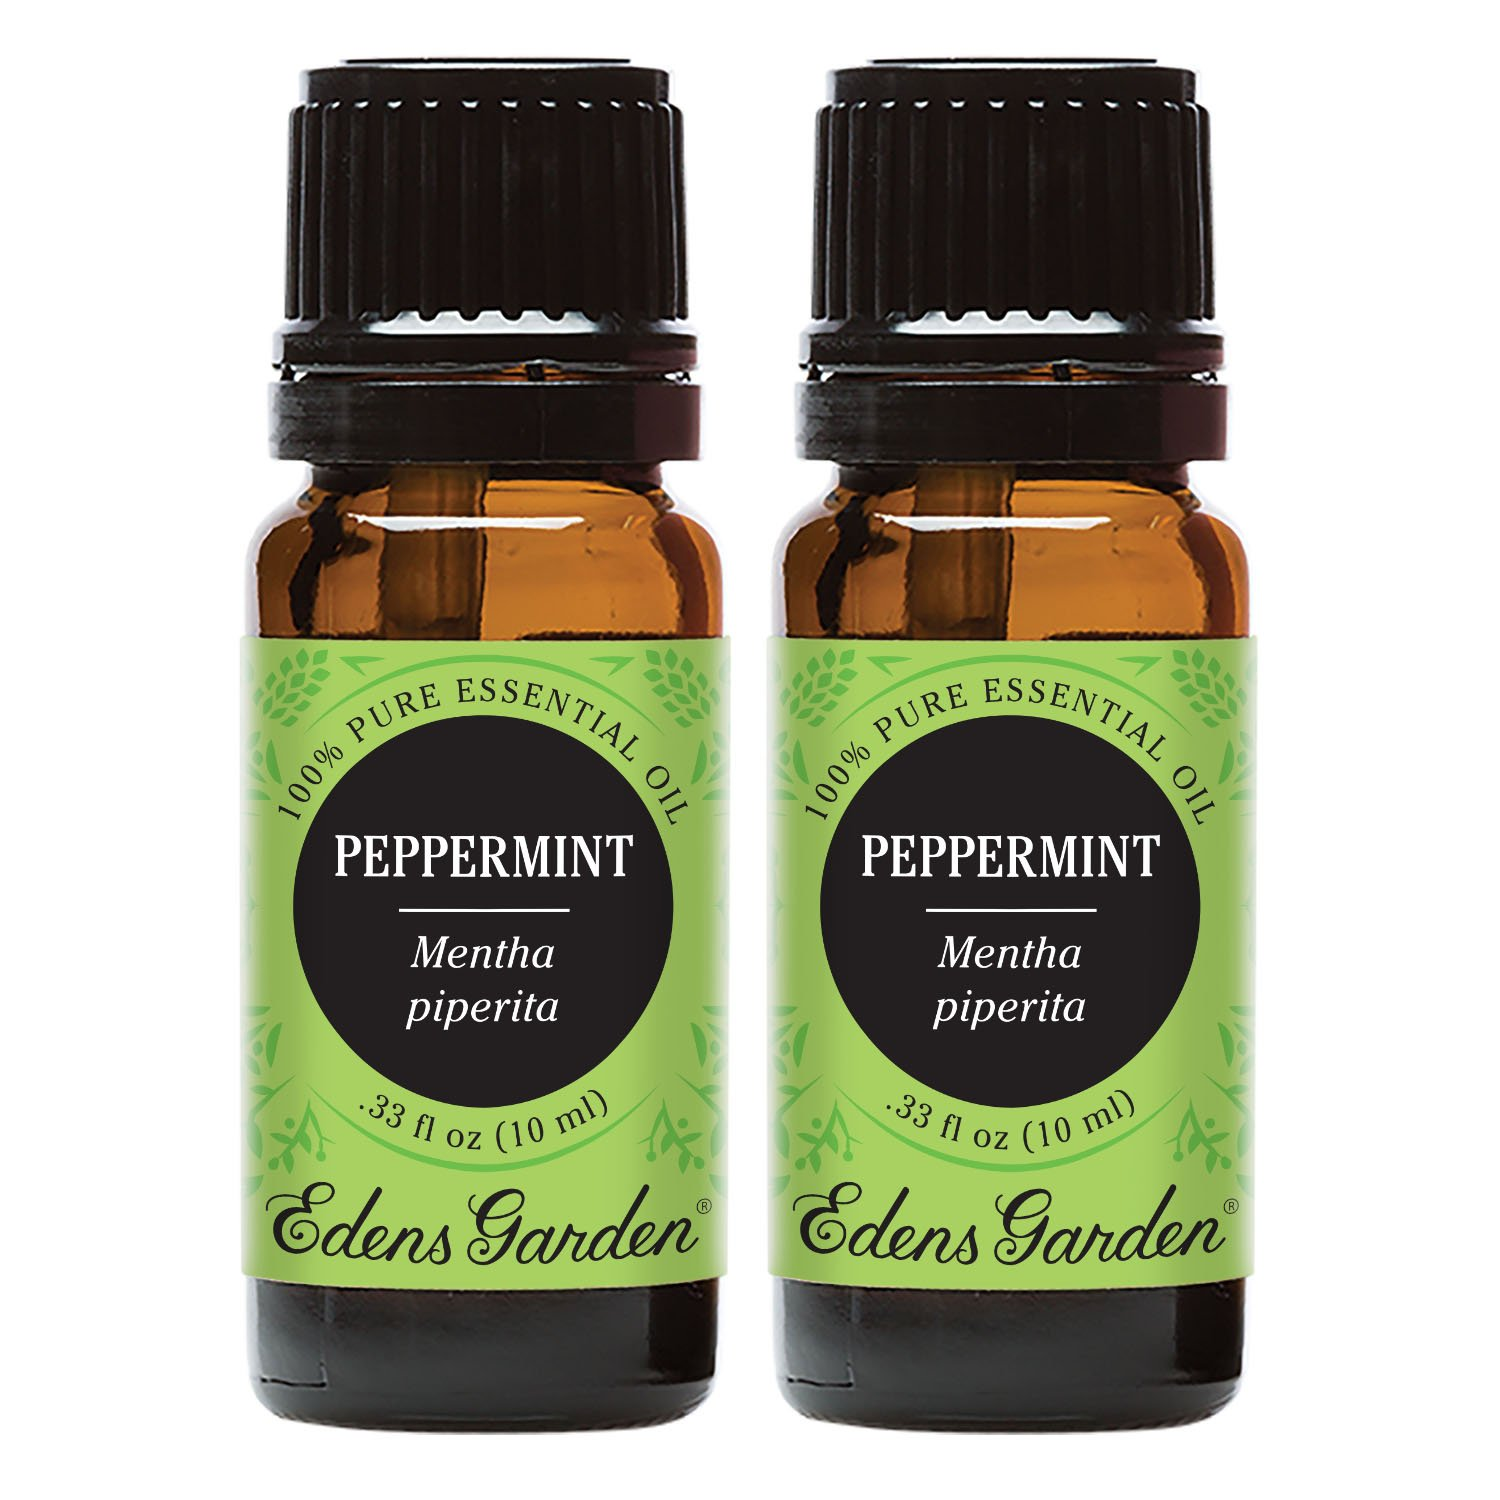 Edens Garden Peppermint Value Pack 100% Pure Undiluted Therapeutic Grade Essential Oil GC/MS Tested